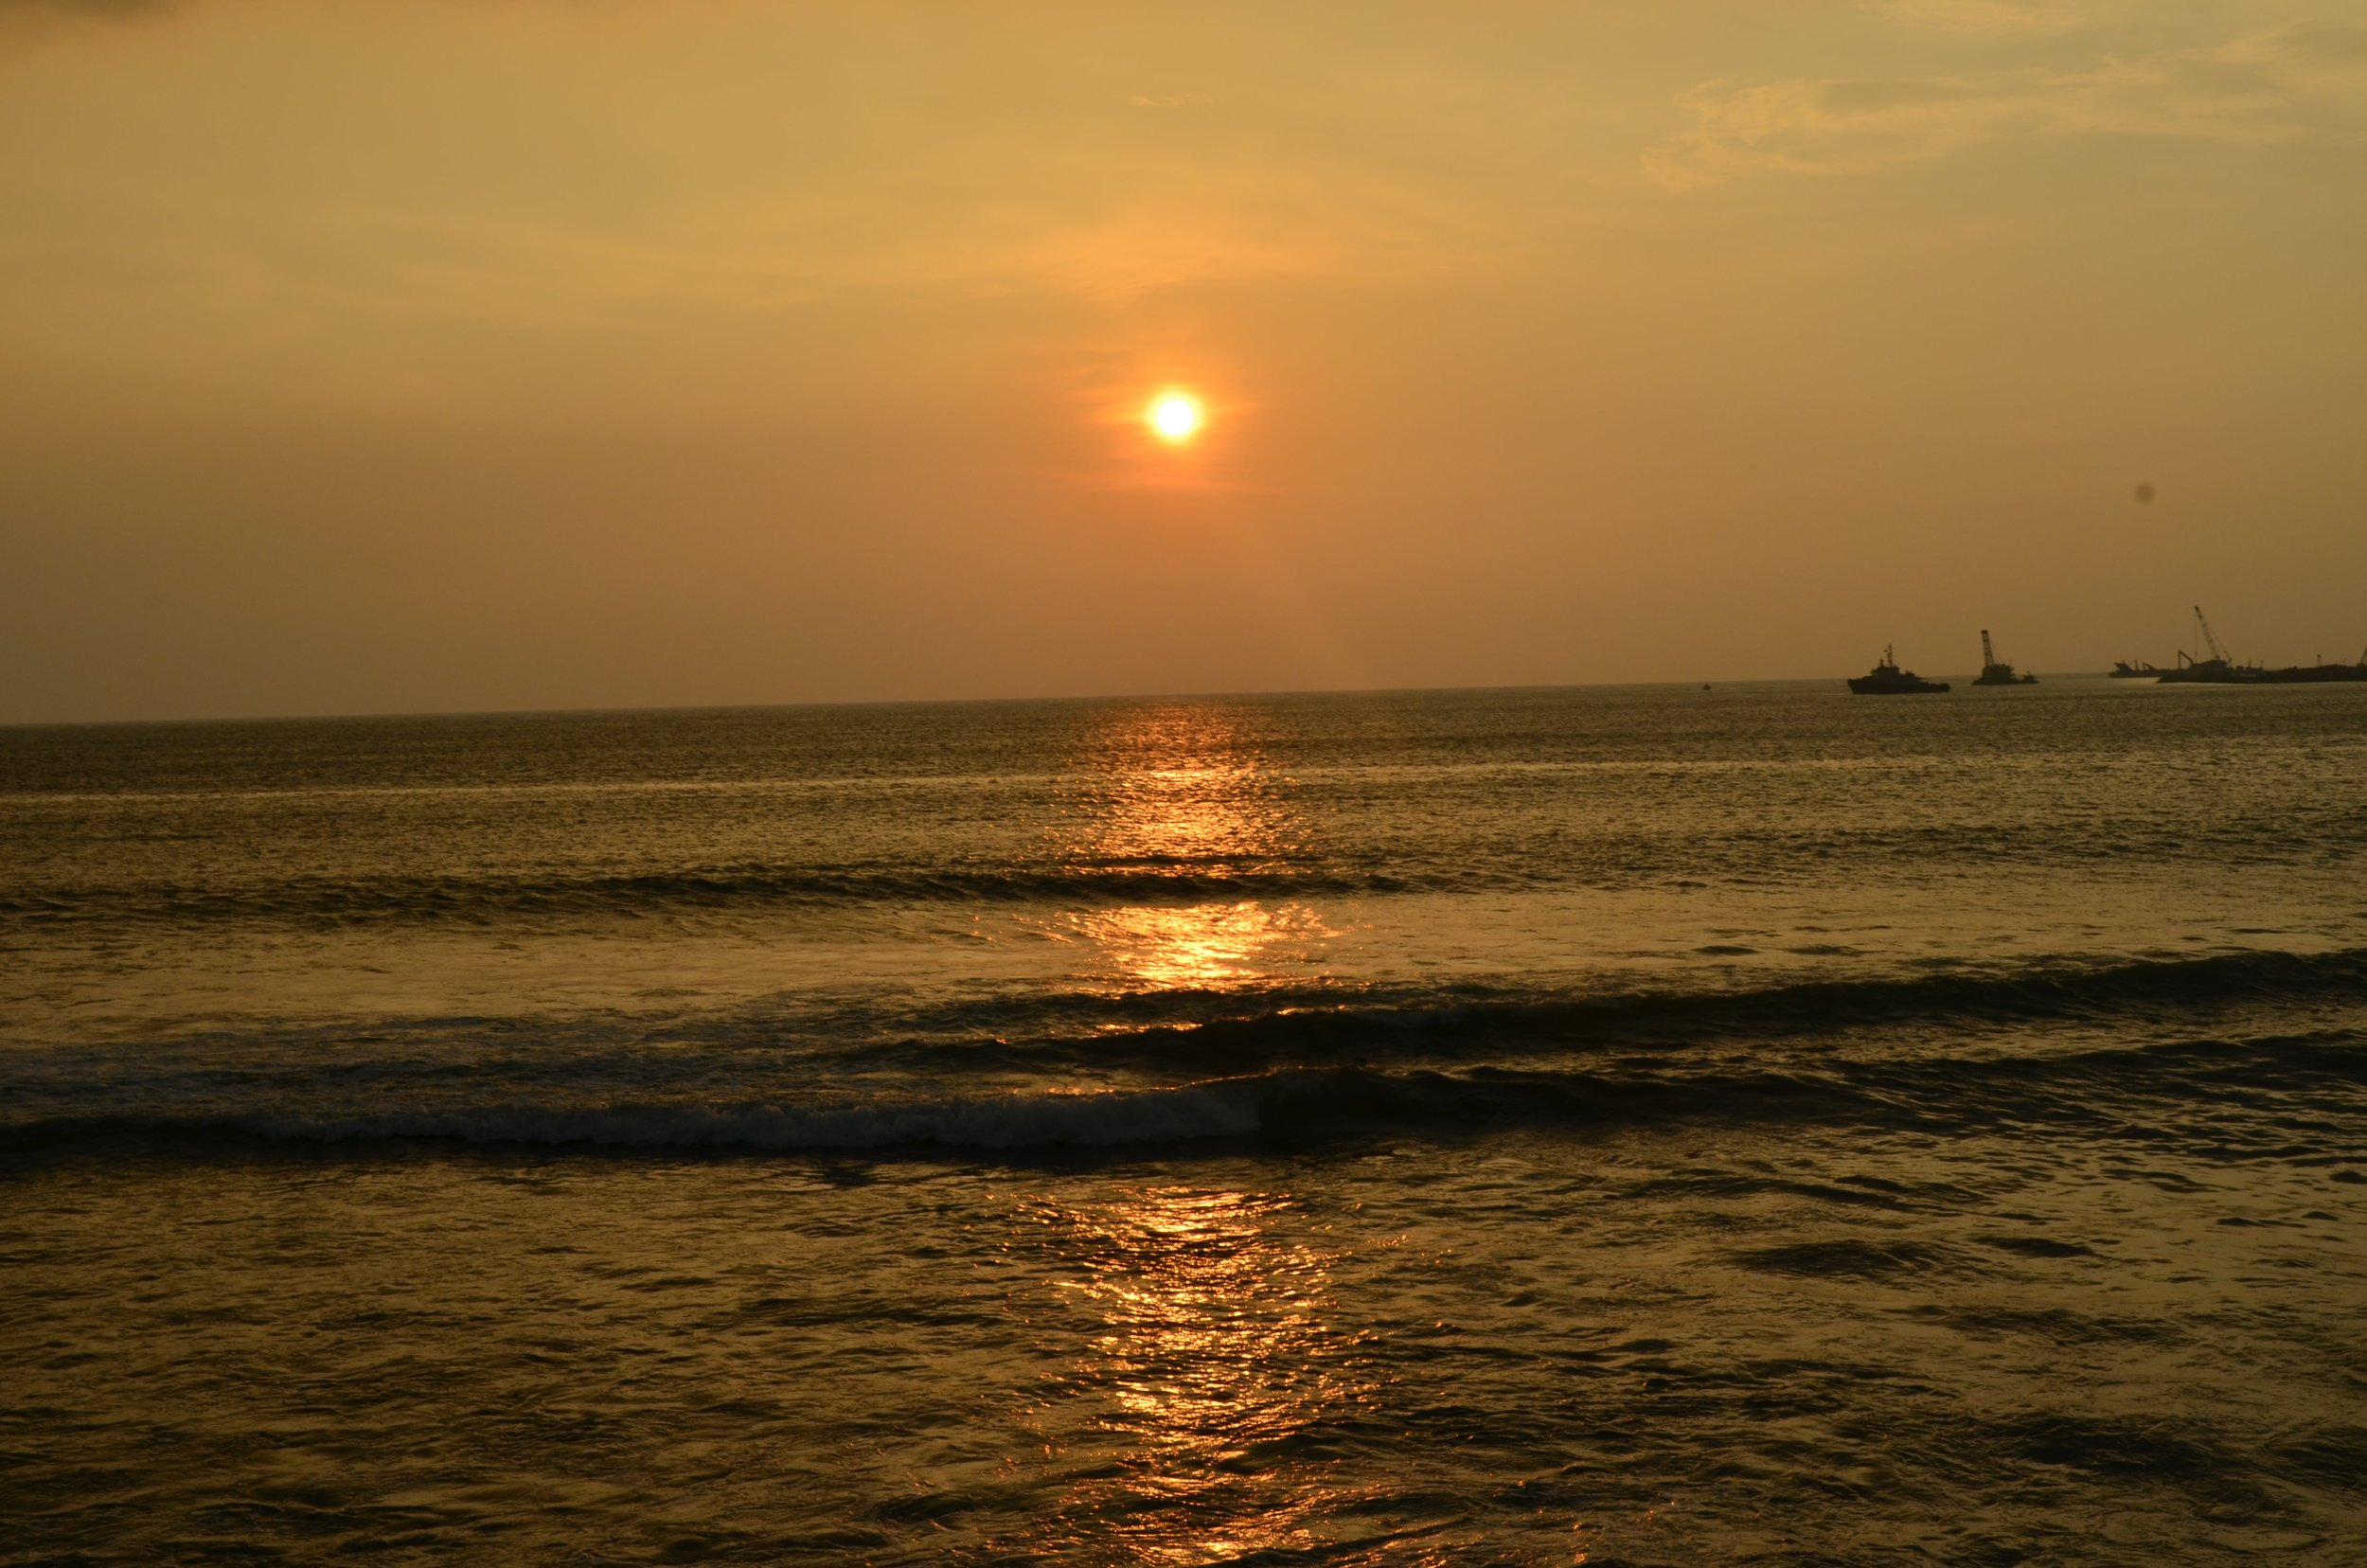 Marissa with its white-sand beaches made it on our list of the best beaches in Sri Lanka.